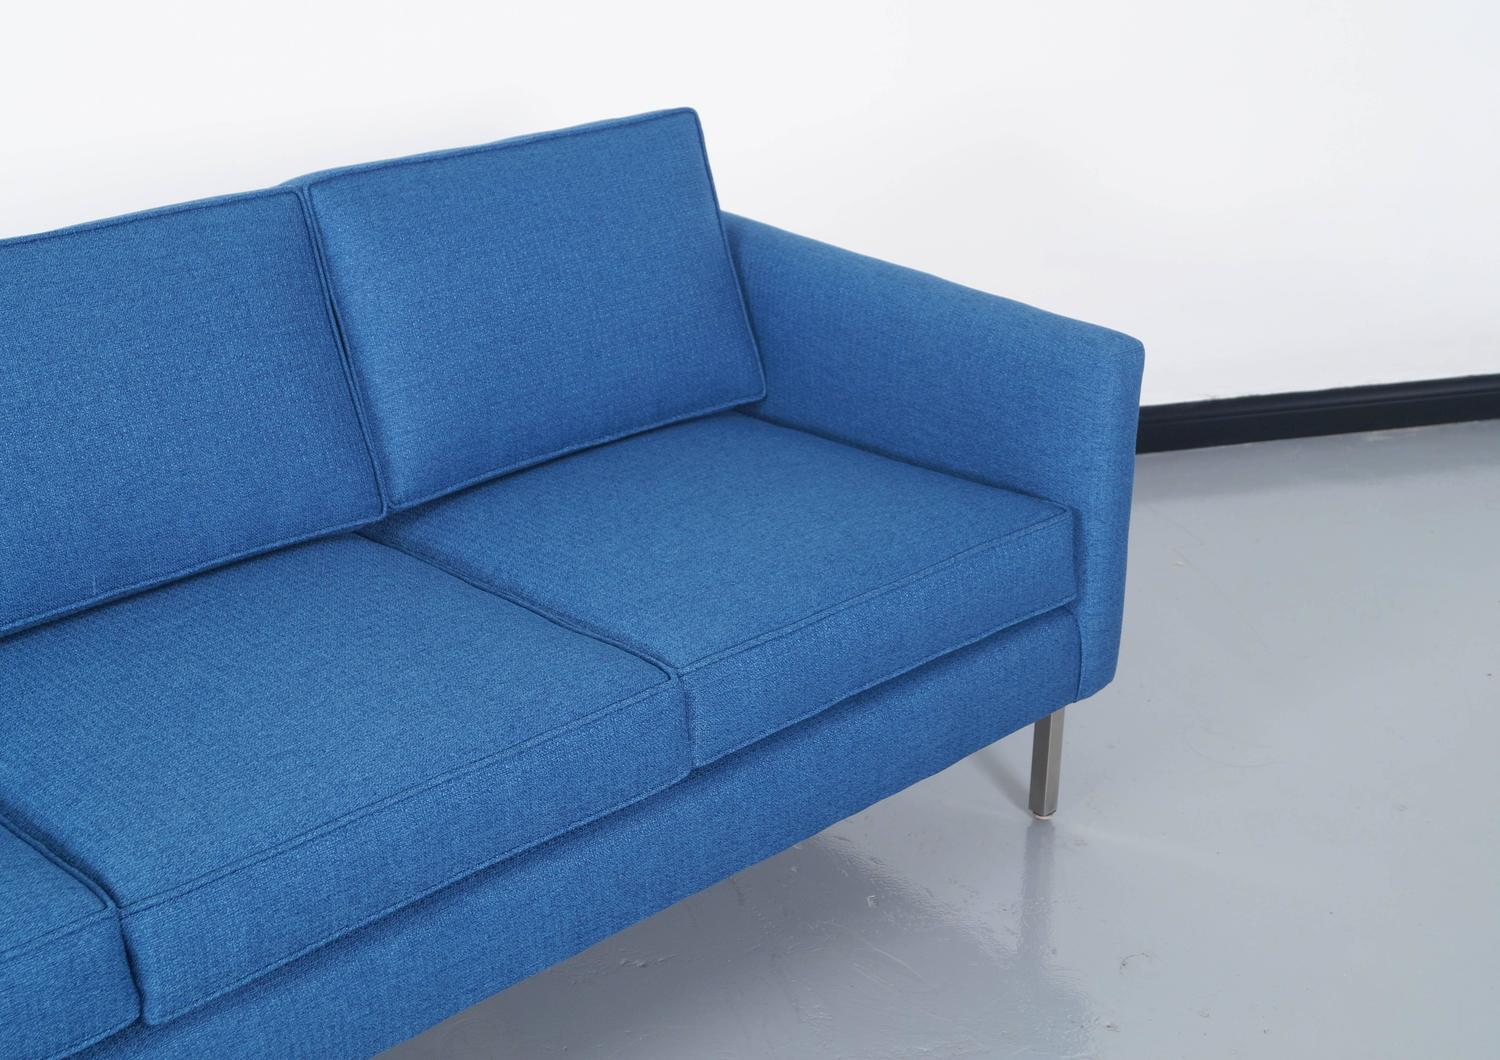 Mid Century Modern Loveseat : Mid-Century Modern Chrome Sofa at 1stdibs